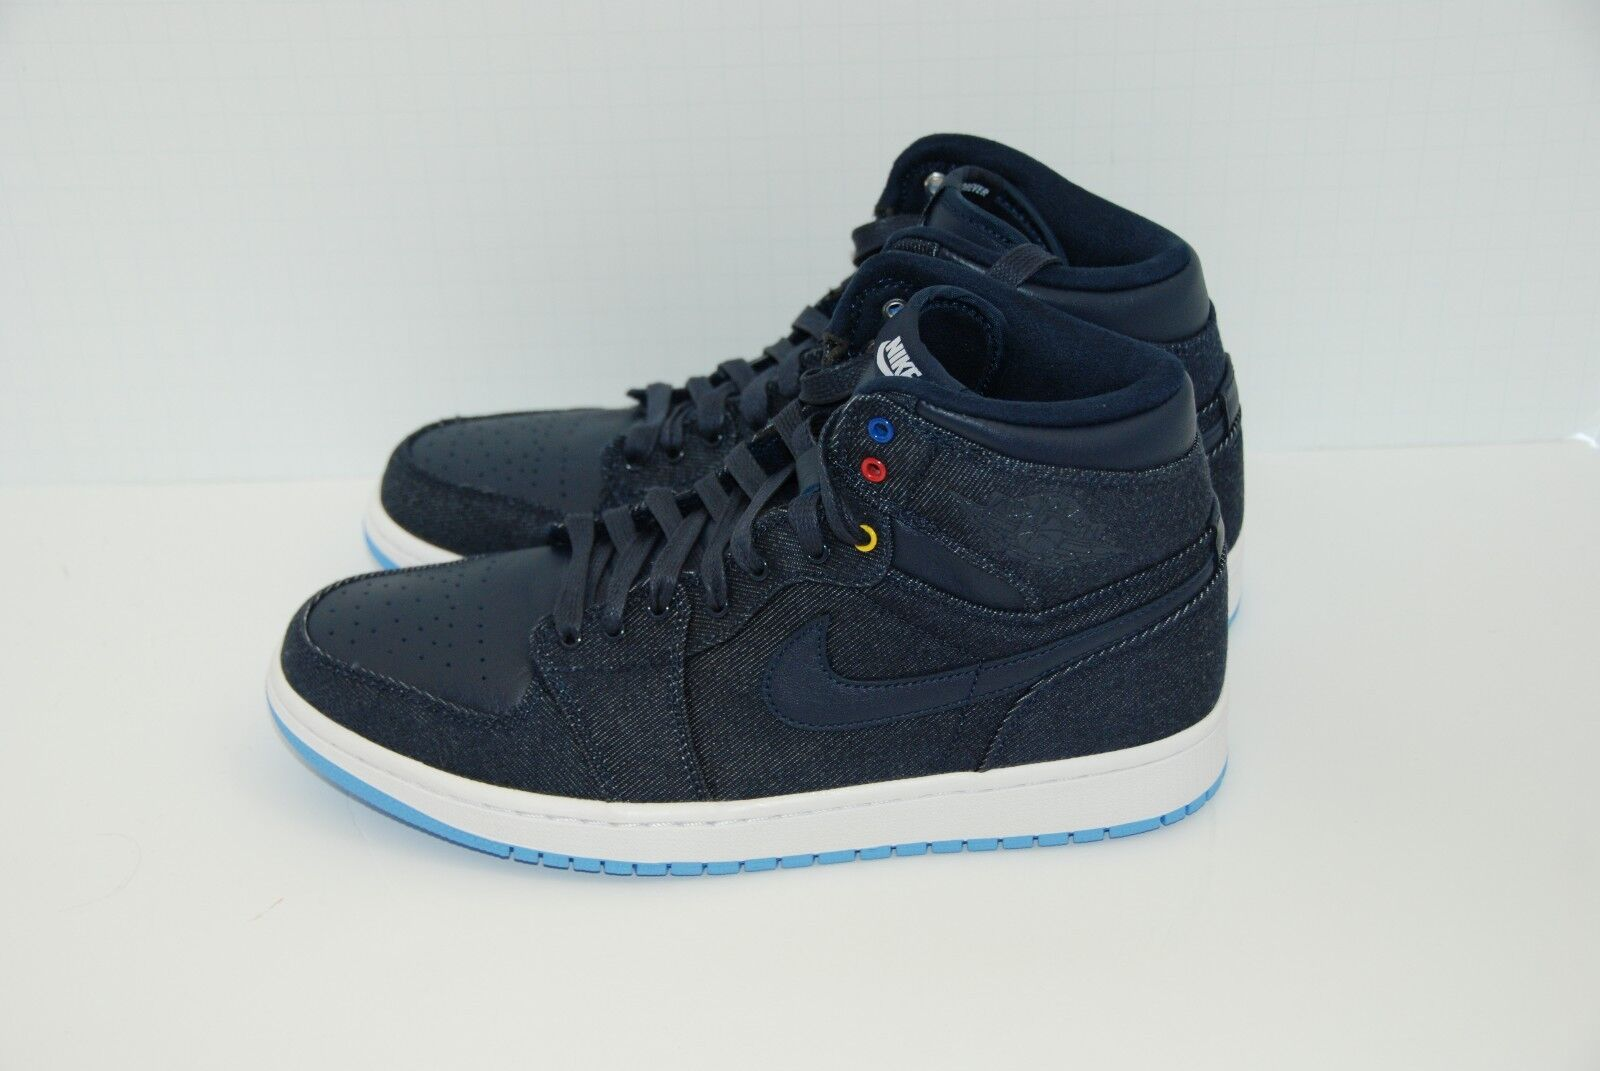 pretty nice 4581a 21a2c NIKE AIR JORDAN 1 RETRO HIGH OG FAMILY FOREVER Father s Father s Father s  Day 8.5 US d83bfa